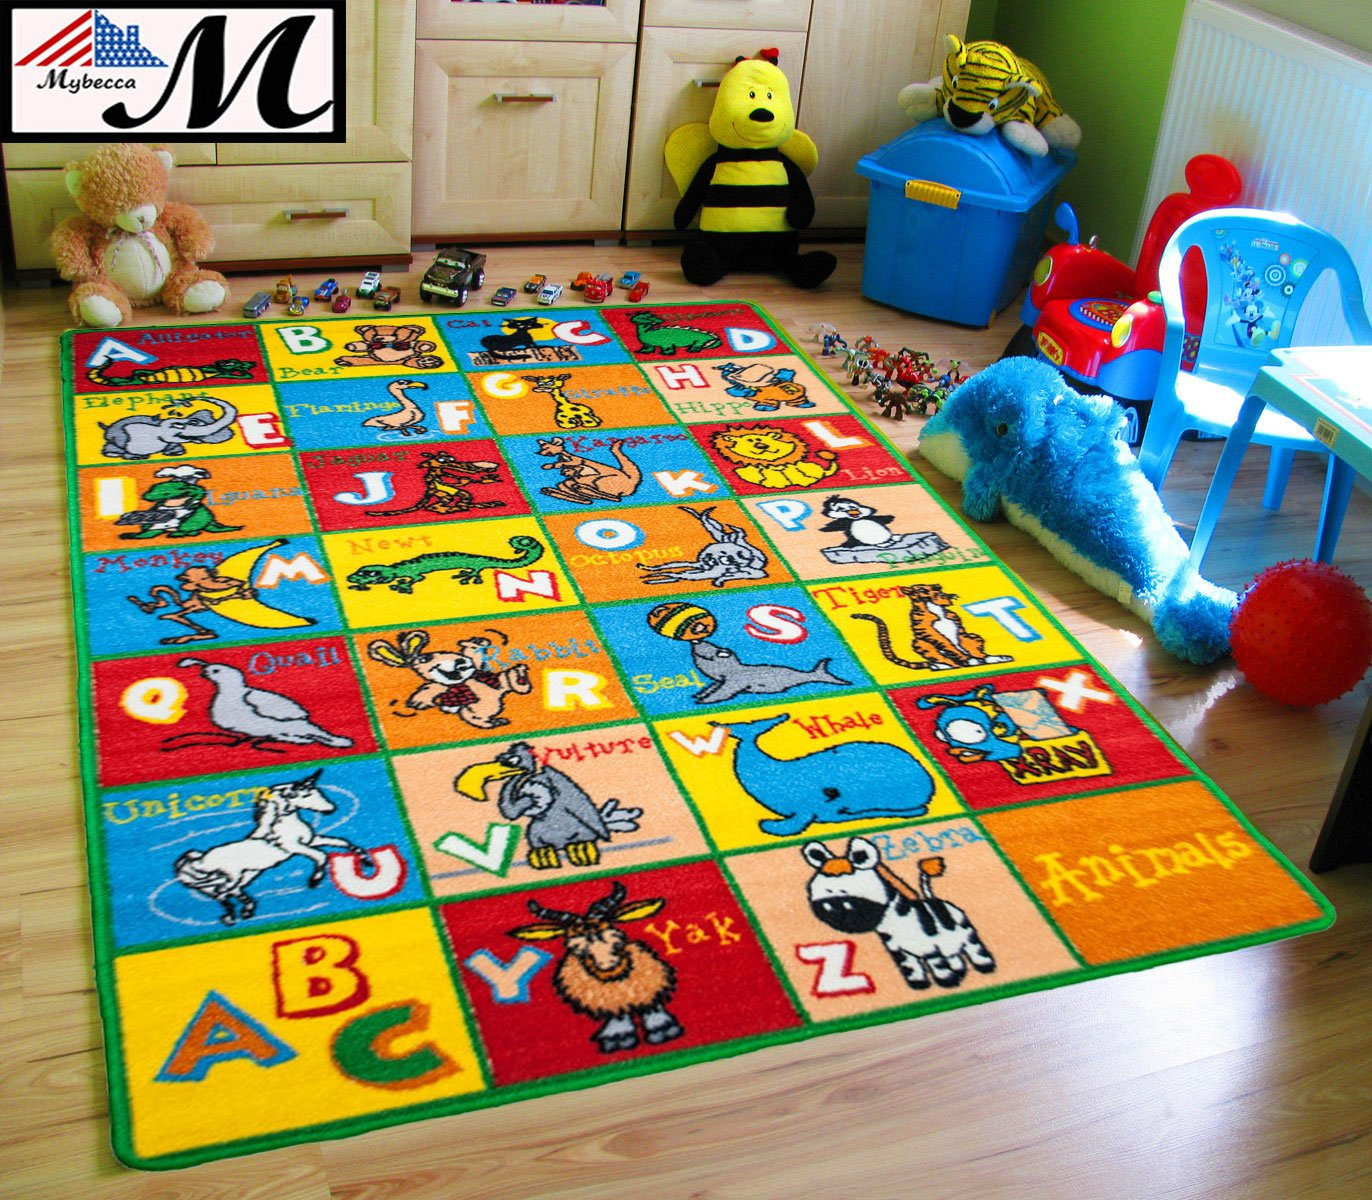 Mybecca Kids Rug alphabet Animals Area Rug 3' x 5' Children Area Rug for Playroom & Nursery - Non Skid Gel Backing 39'' x 58''